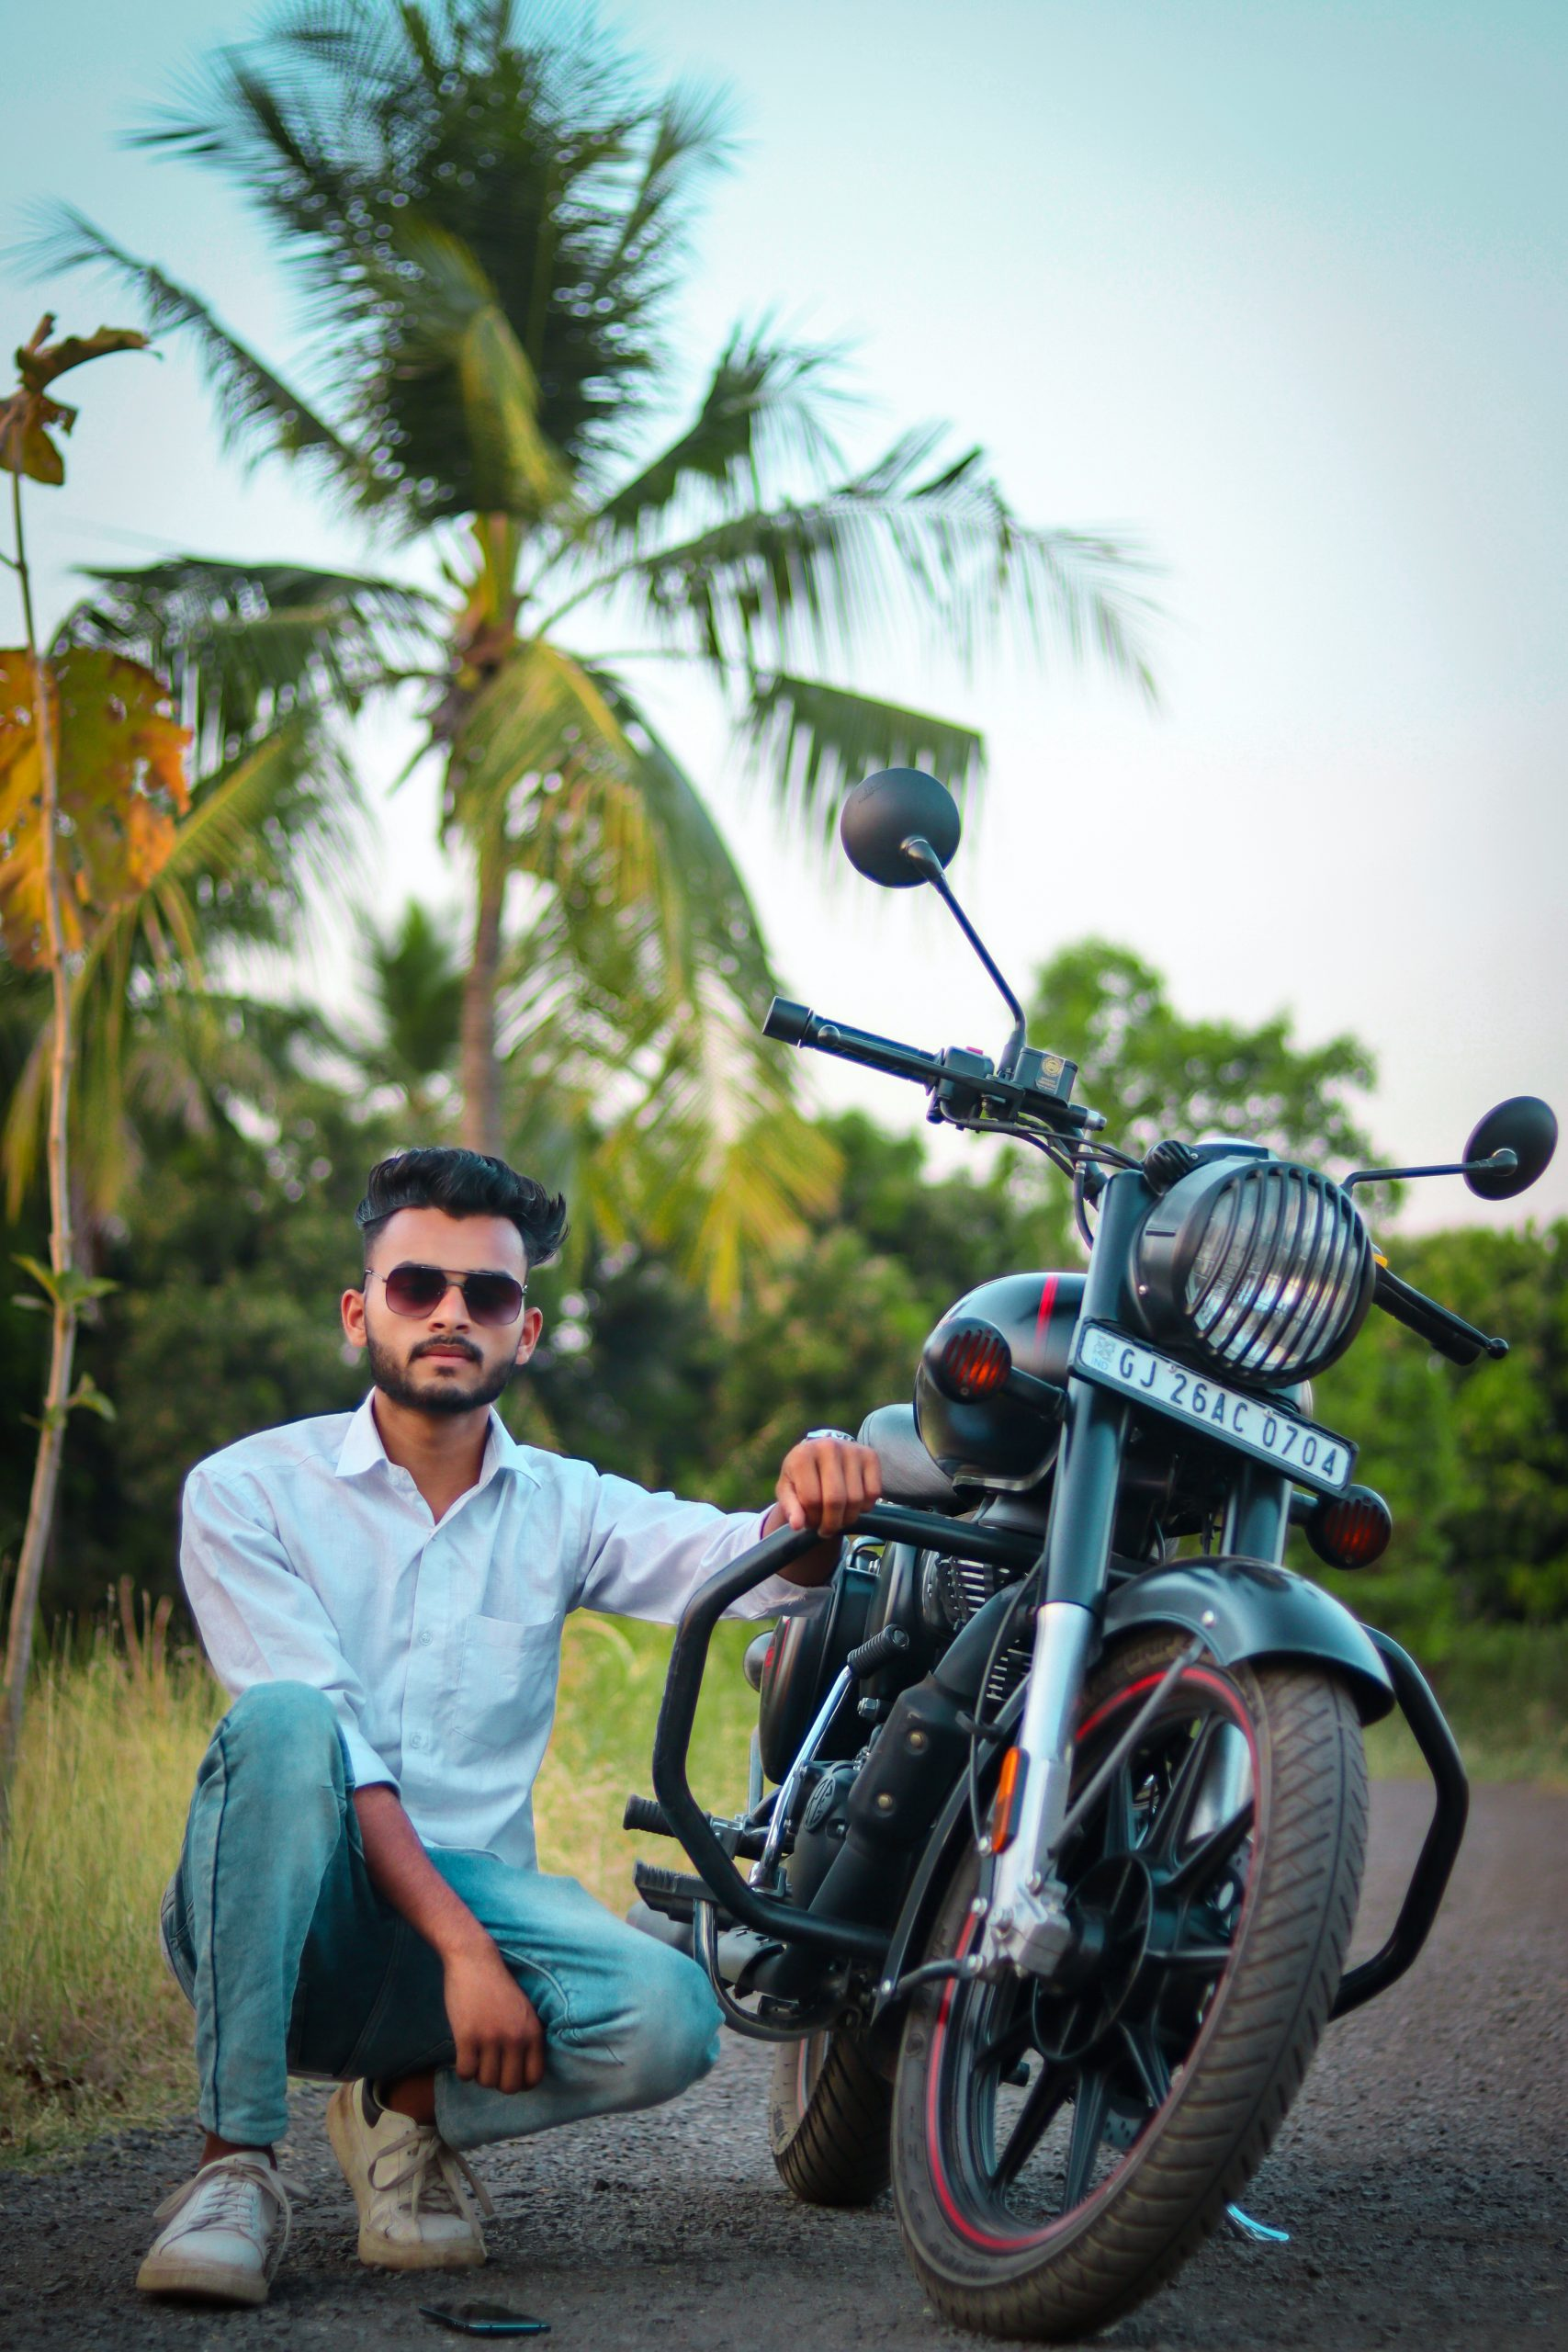 Boy posing with Royal Enfield bike